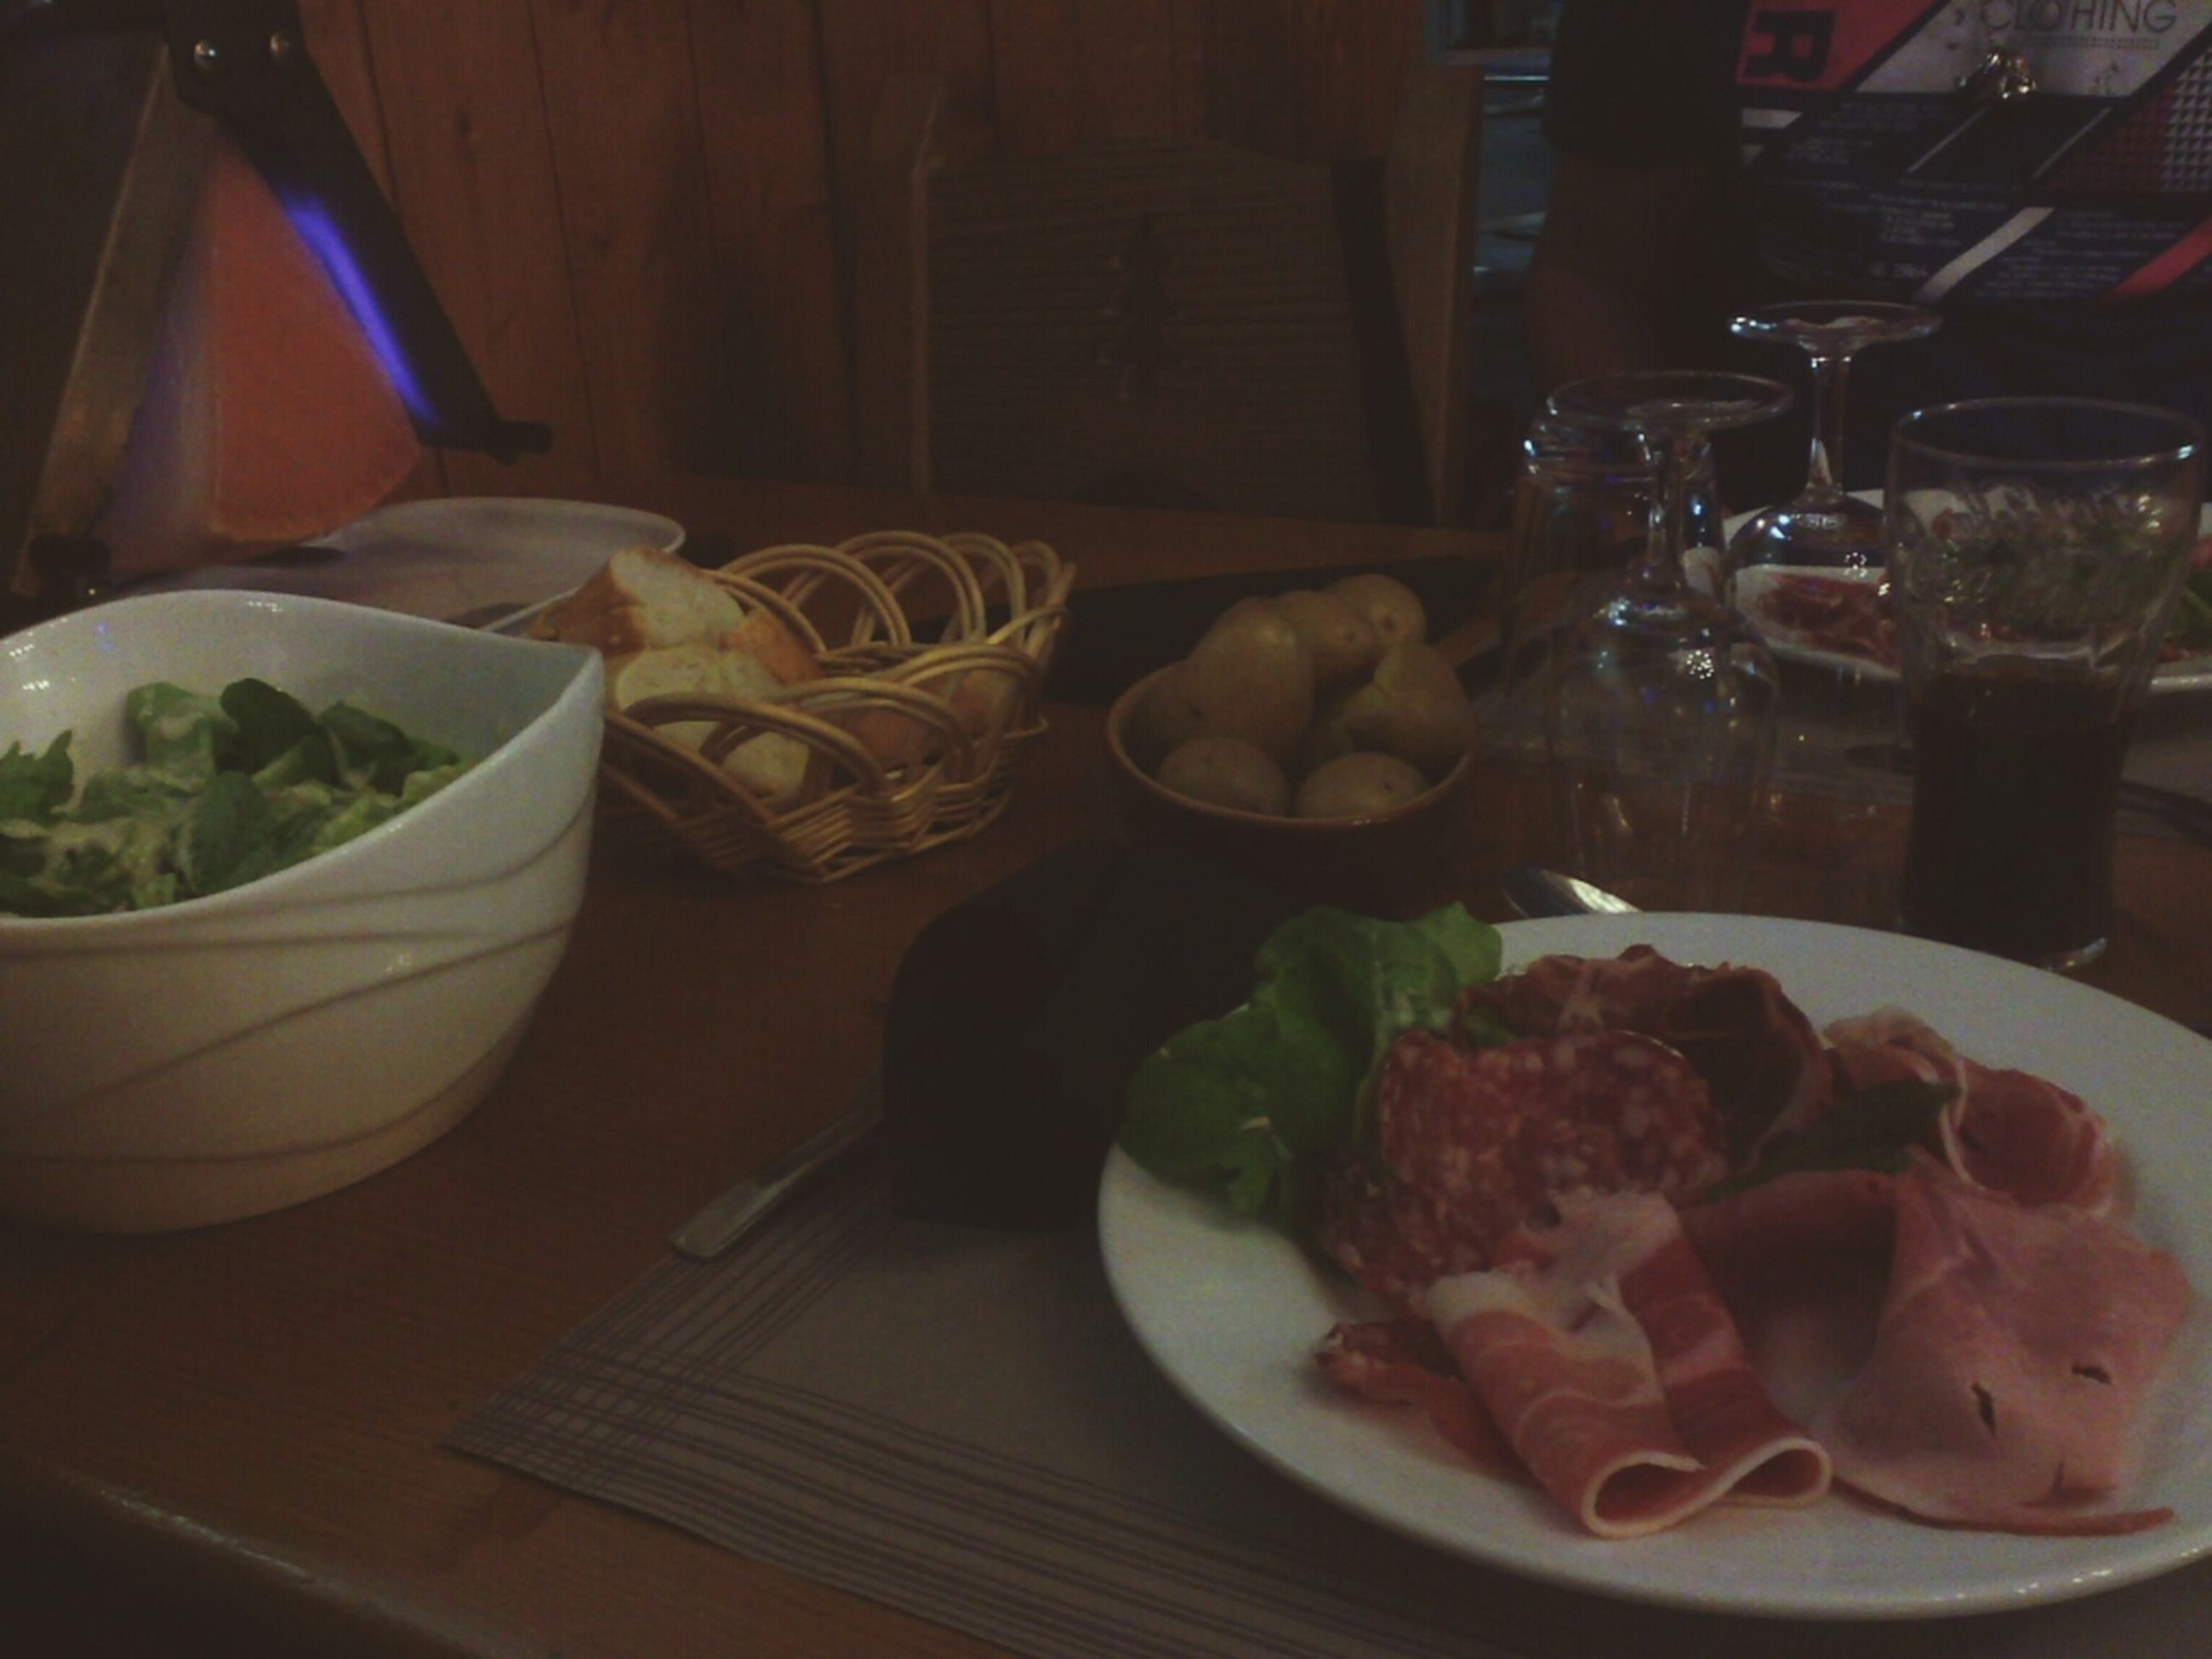 food and drink, indoors, food, plate, freshness, table, ready-to-eat, still life, serving size, healthy eating, meal, restaurant, indulgence, served, drink, salad, drinking glass, fork, close-up, bowl